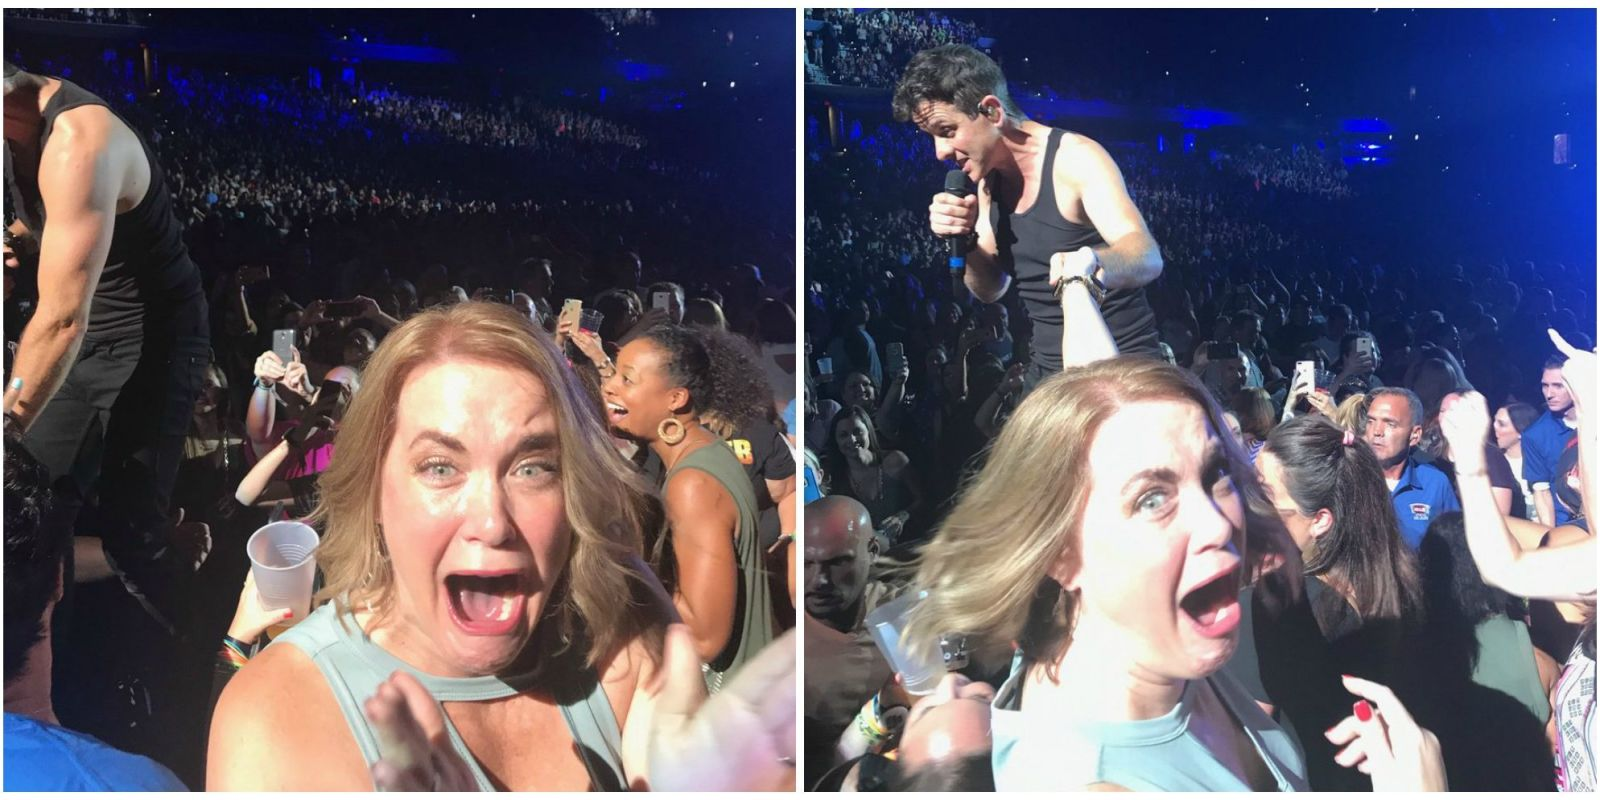 This Mom Freaked Out During a New Kids on the Block Concert and the Photos Are Hilarious